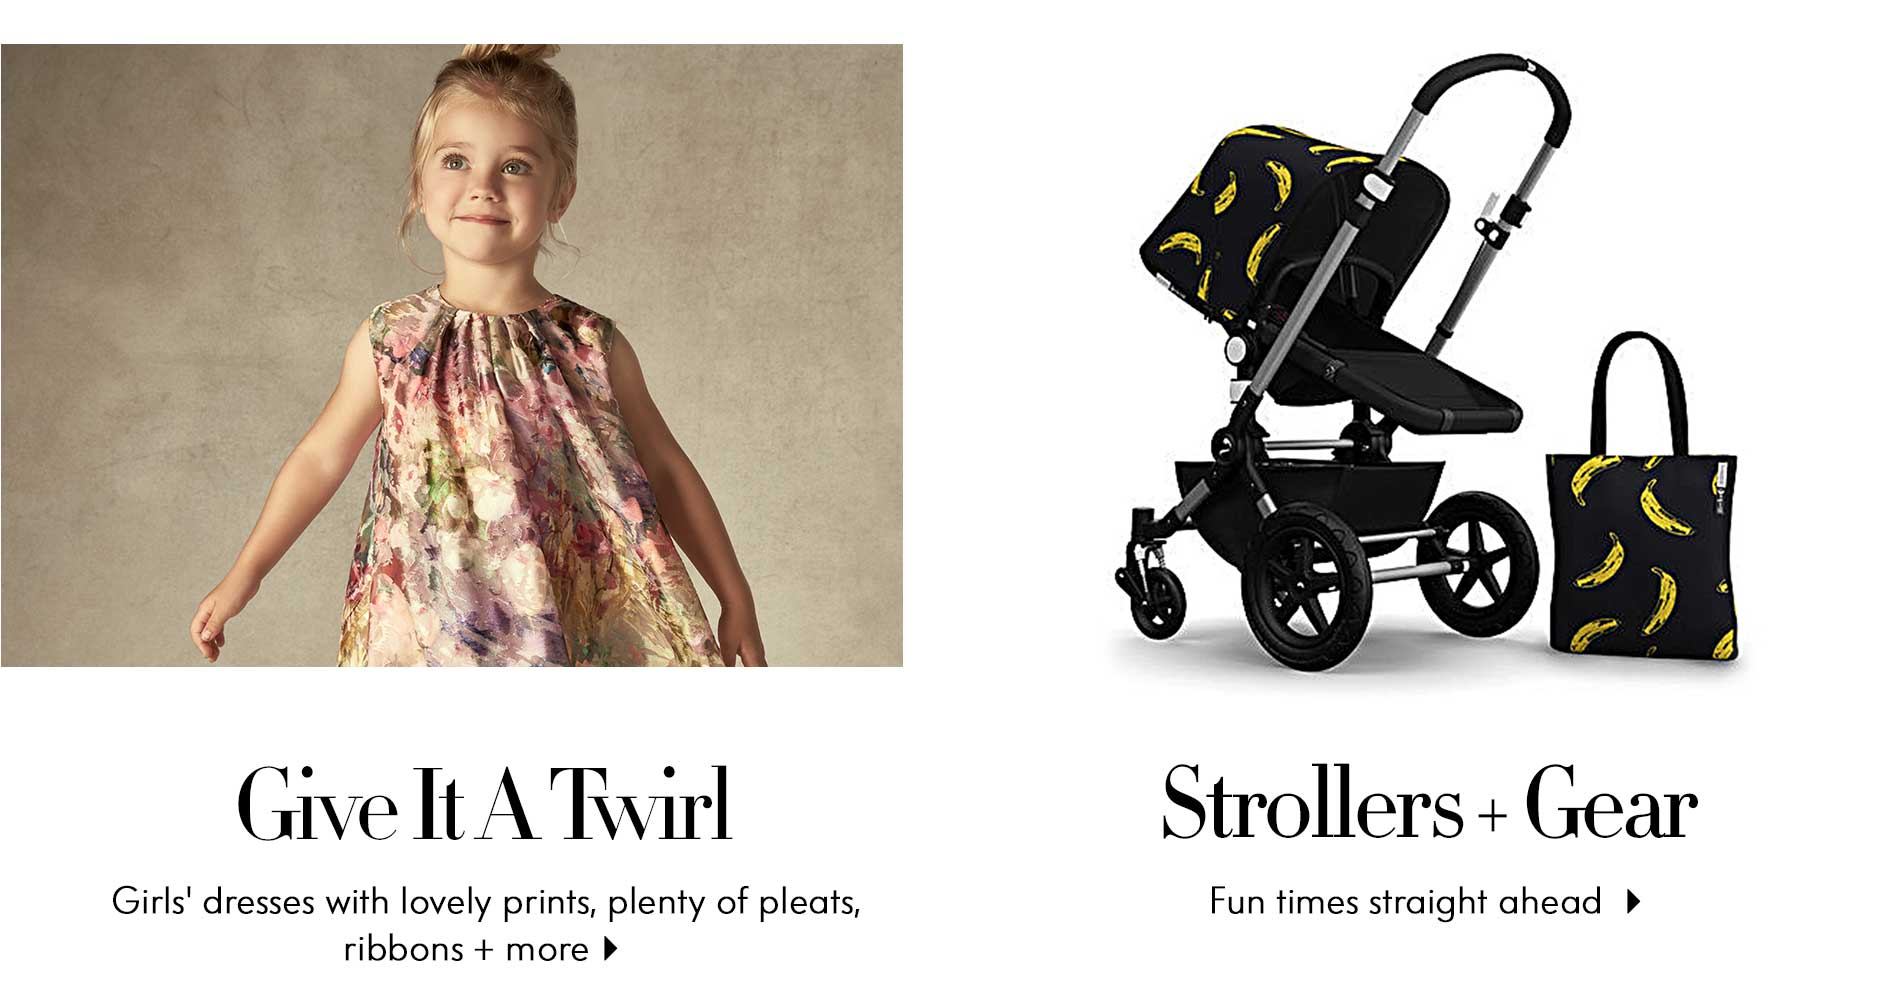 Give It A Twirl & Strollers + Gear